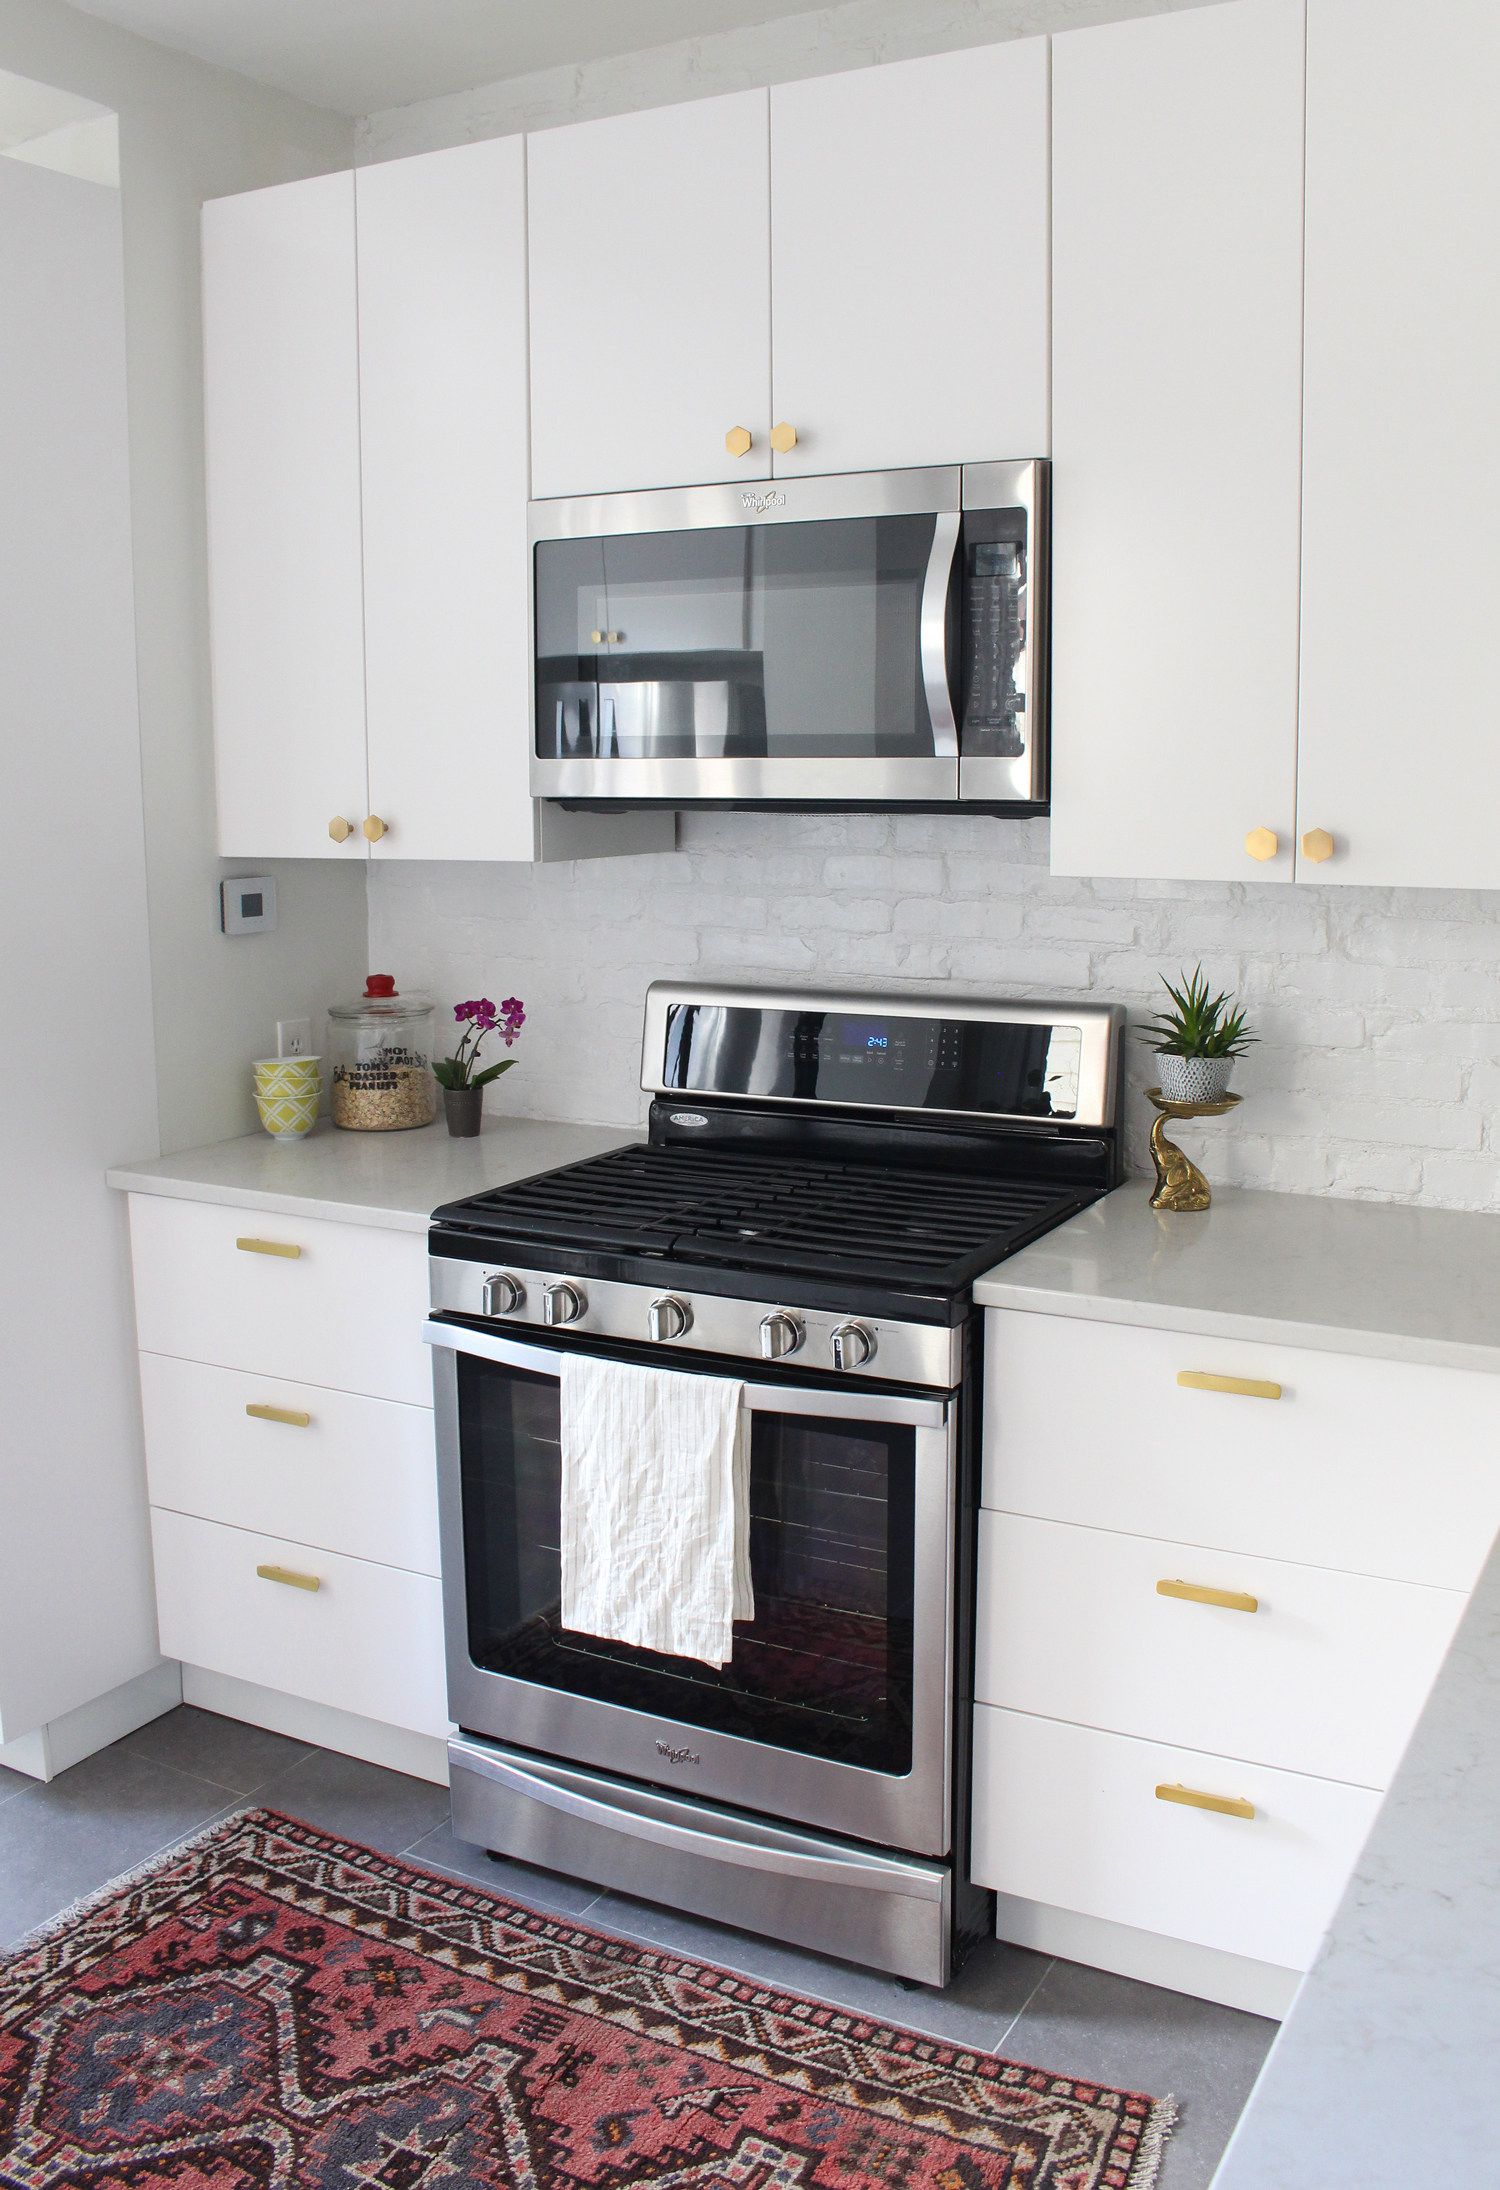 Modern-White-Kitchen-Renovation-Ikea-Sektion-33.jpg